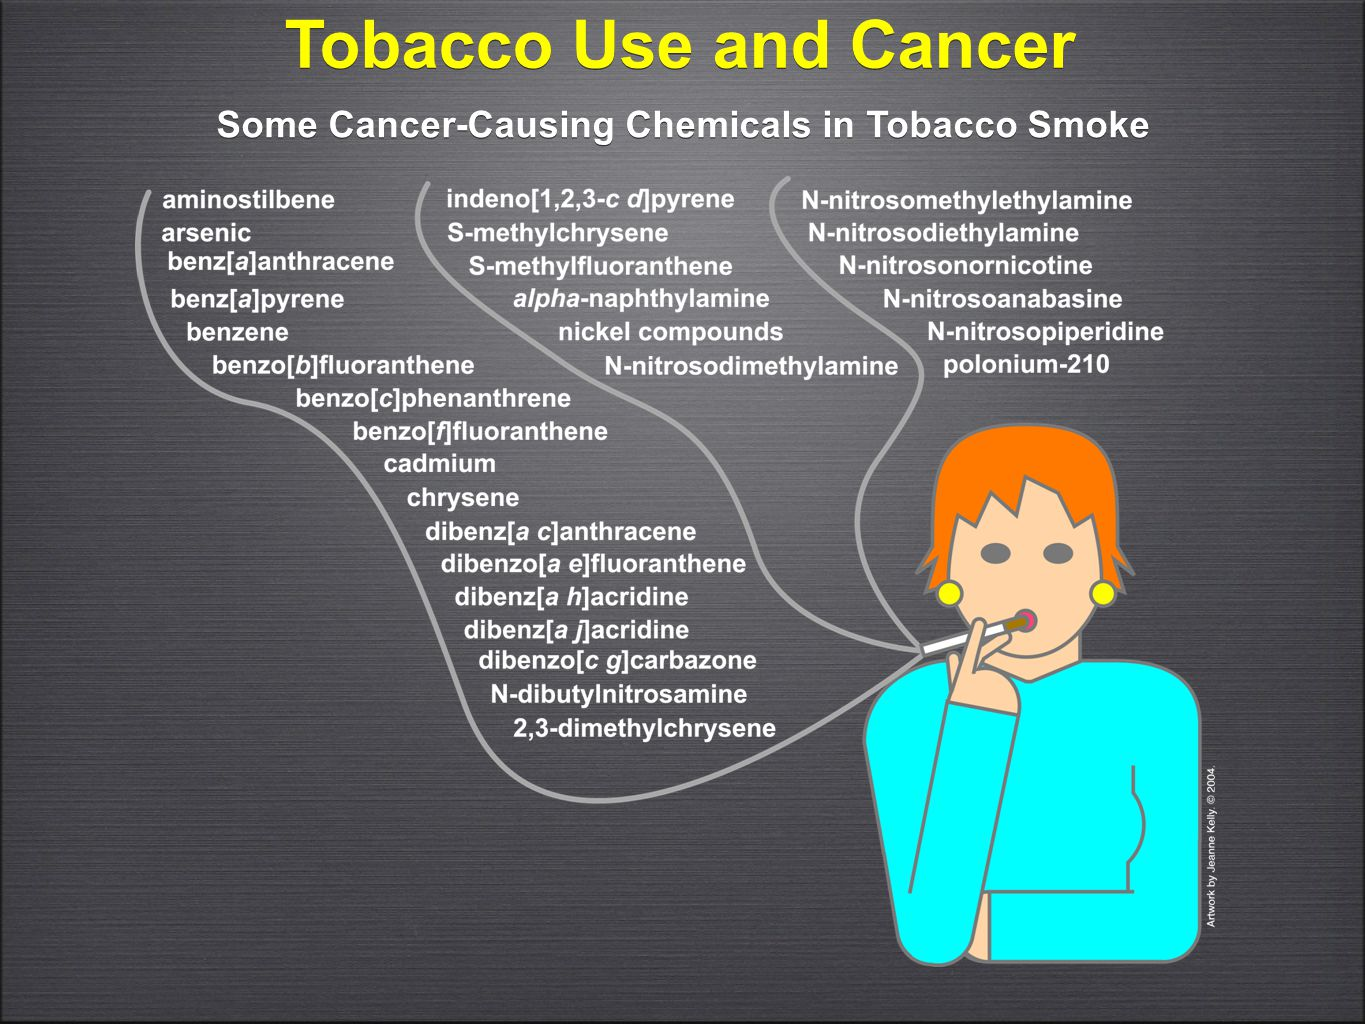 Some Cancer-Causing Chemicals in Tobacco Smoke